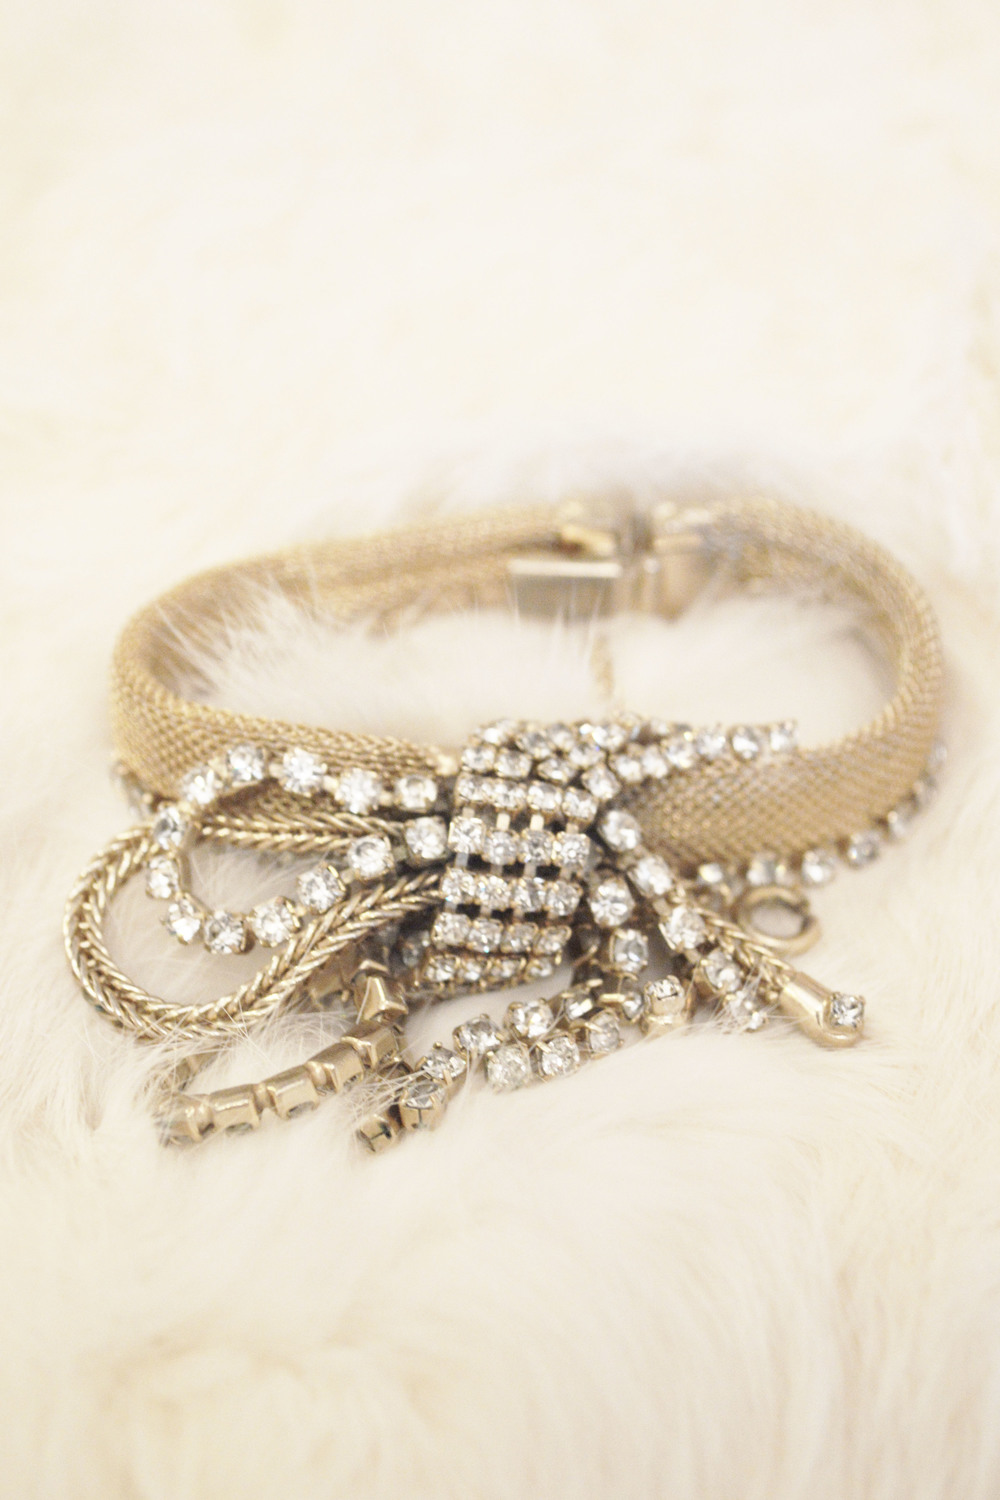 Vintage Bridal Gold Deco Mesh Cluster Statement Bracelet With Rhinestone Tassels In A Bow